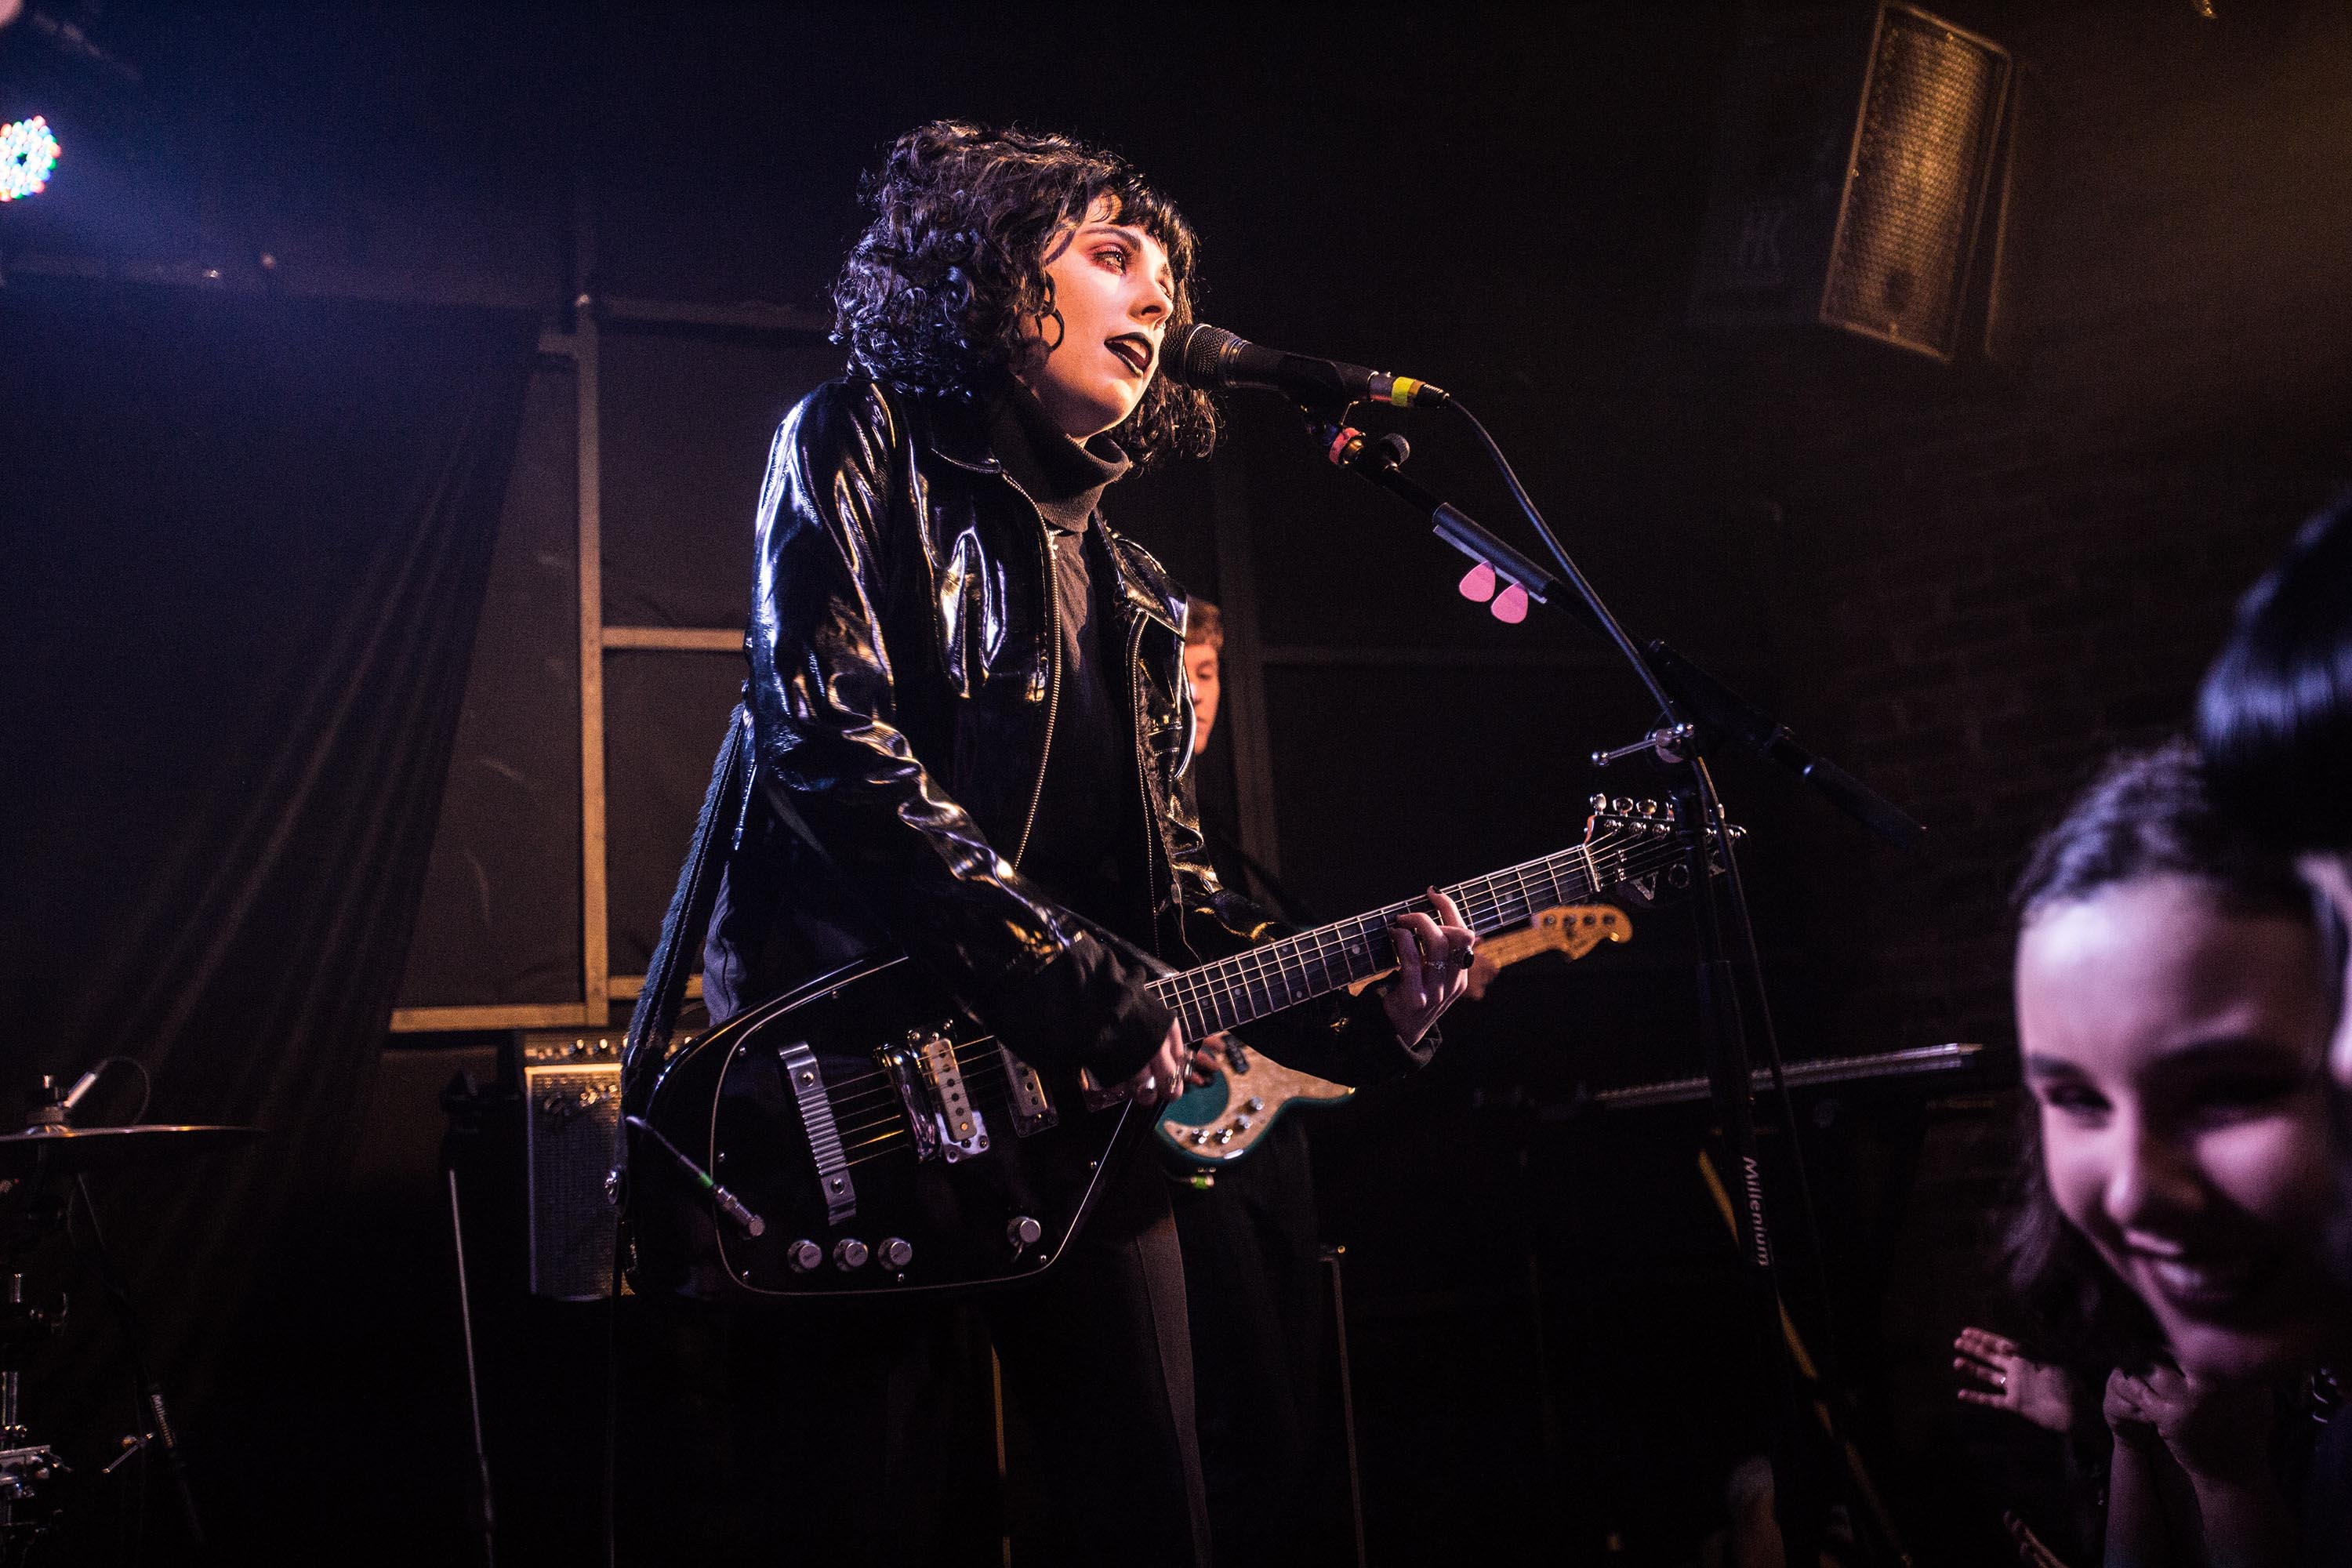 Pale Waves, Our Girl and Bloxx kick off the DIY Class Of 2018 tour with a bang at sold out Tunbridge Wells show